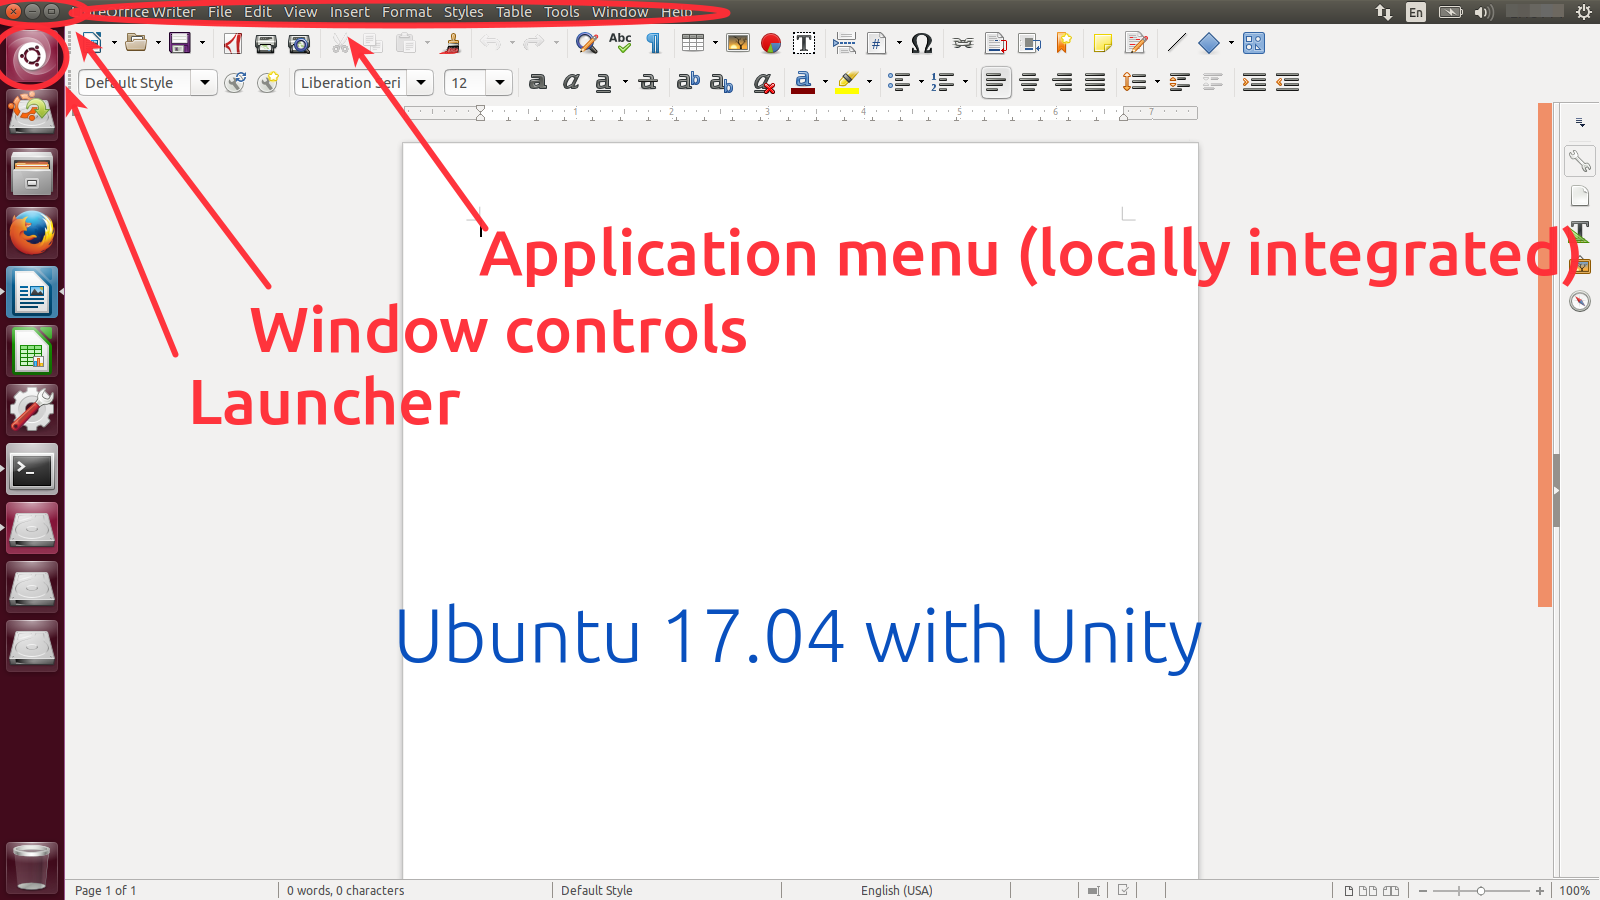 Controls in Ubuntu 17.04